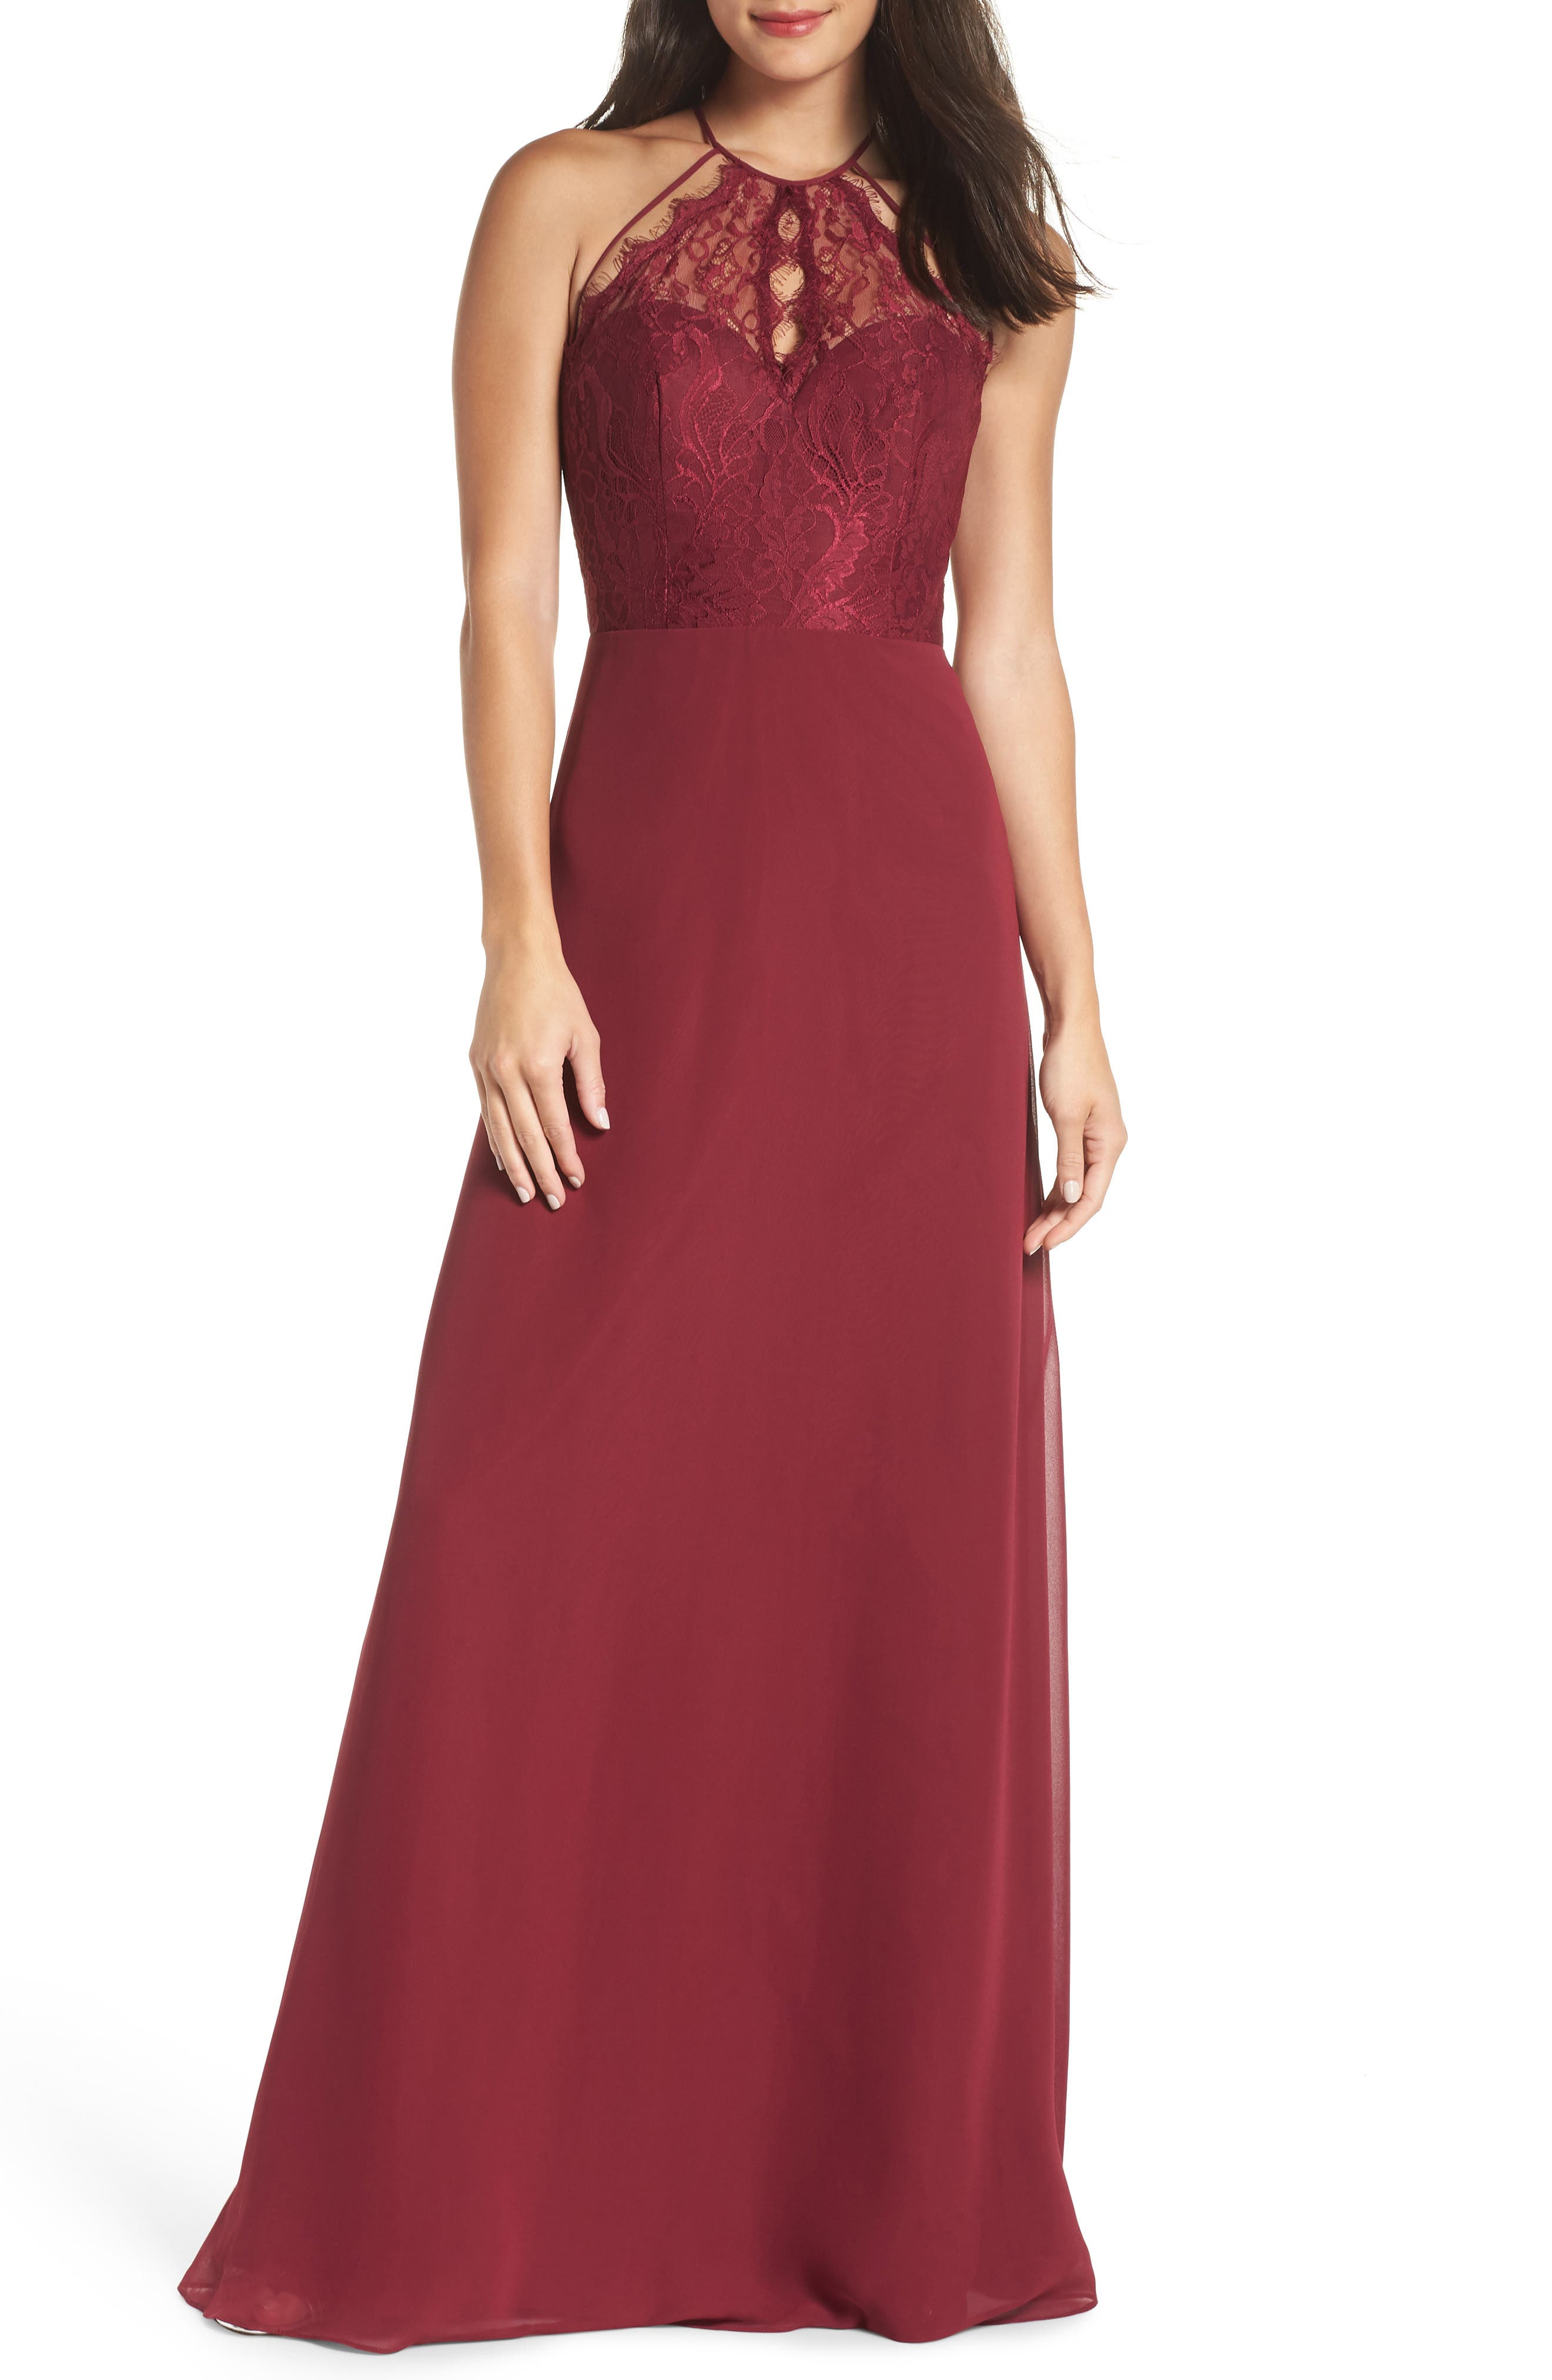 Hayley Paige Occasions Lace & Chiffon Halter Gown, Burgundy